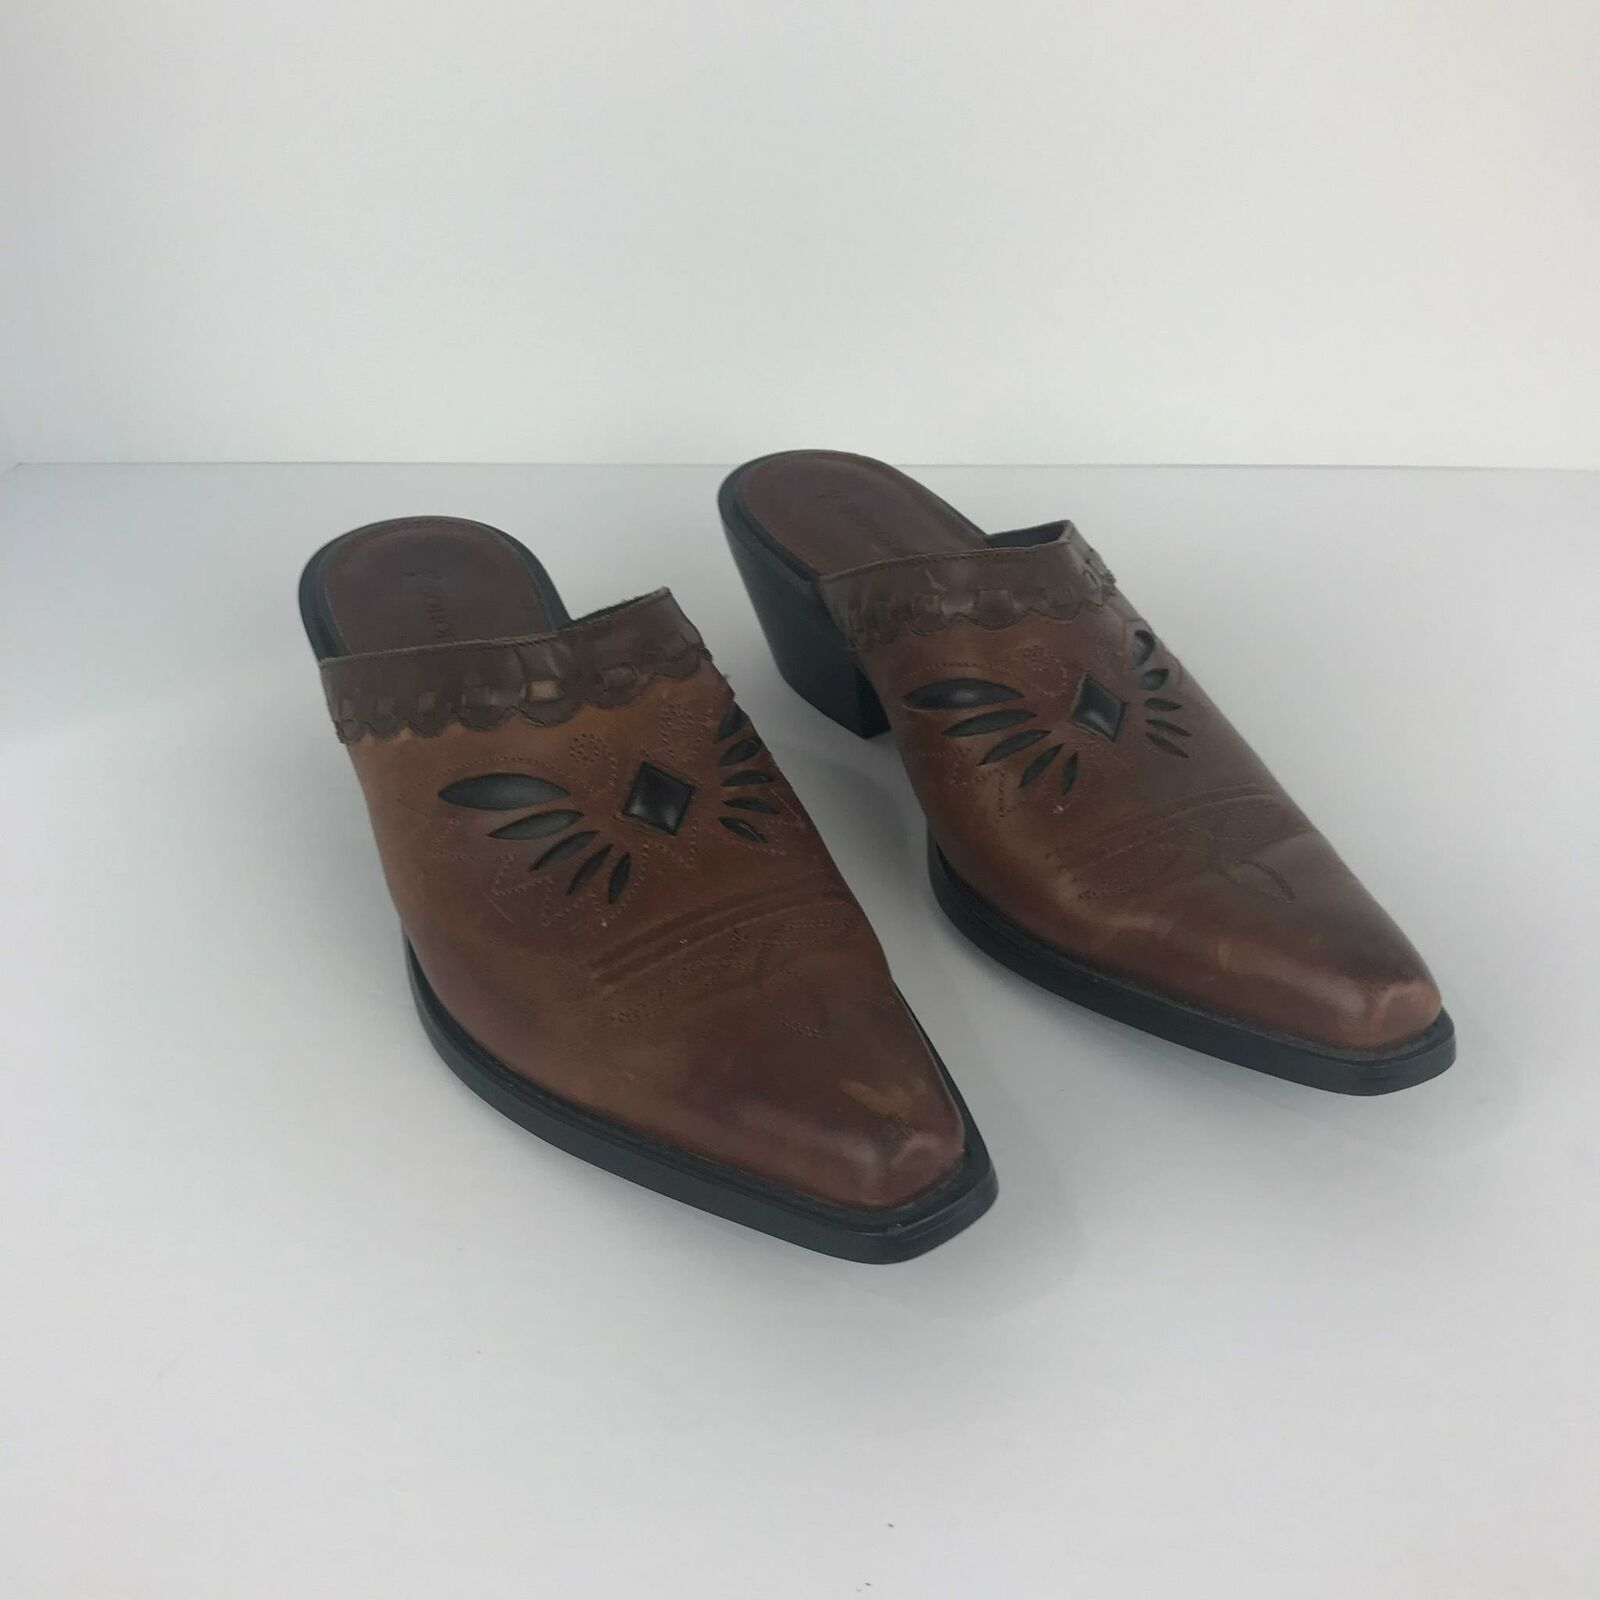 Women's Sonora Western Clogs Mules Brown Leather Butterfly Inlay Booties Size 7